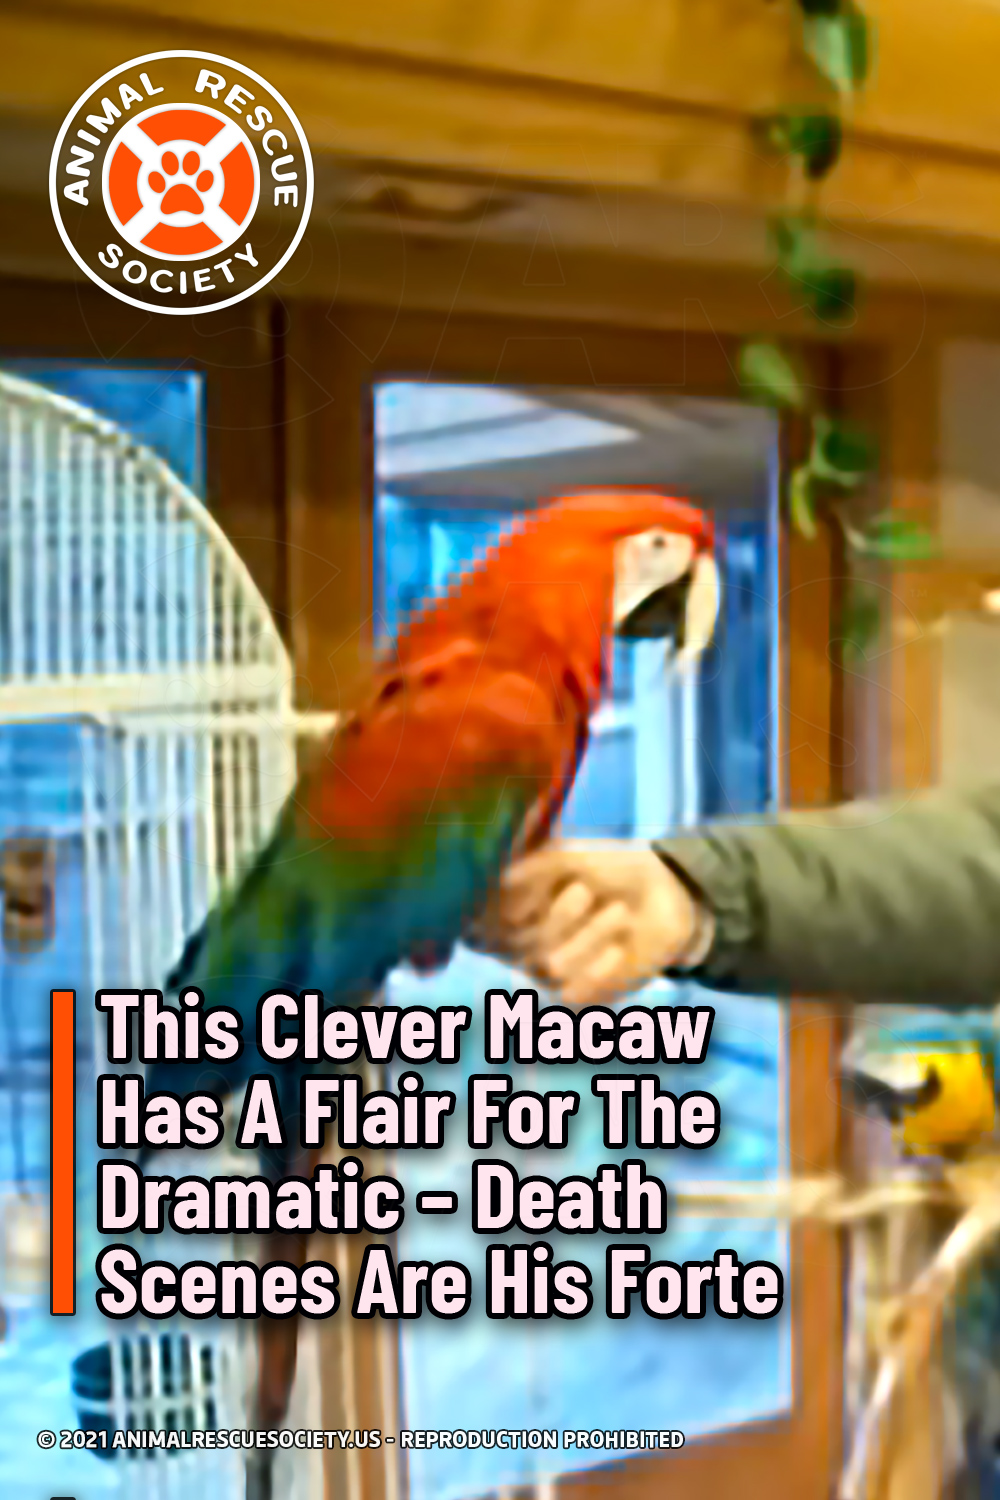 This Clever Macaw Has A Flair For The Dramatic – Death Scenes Are His Forte